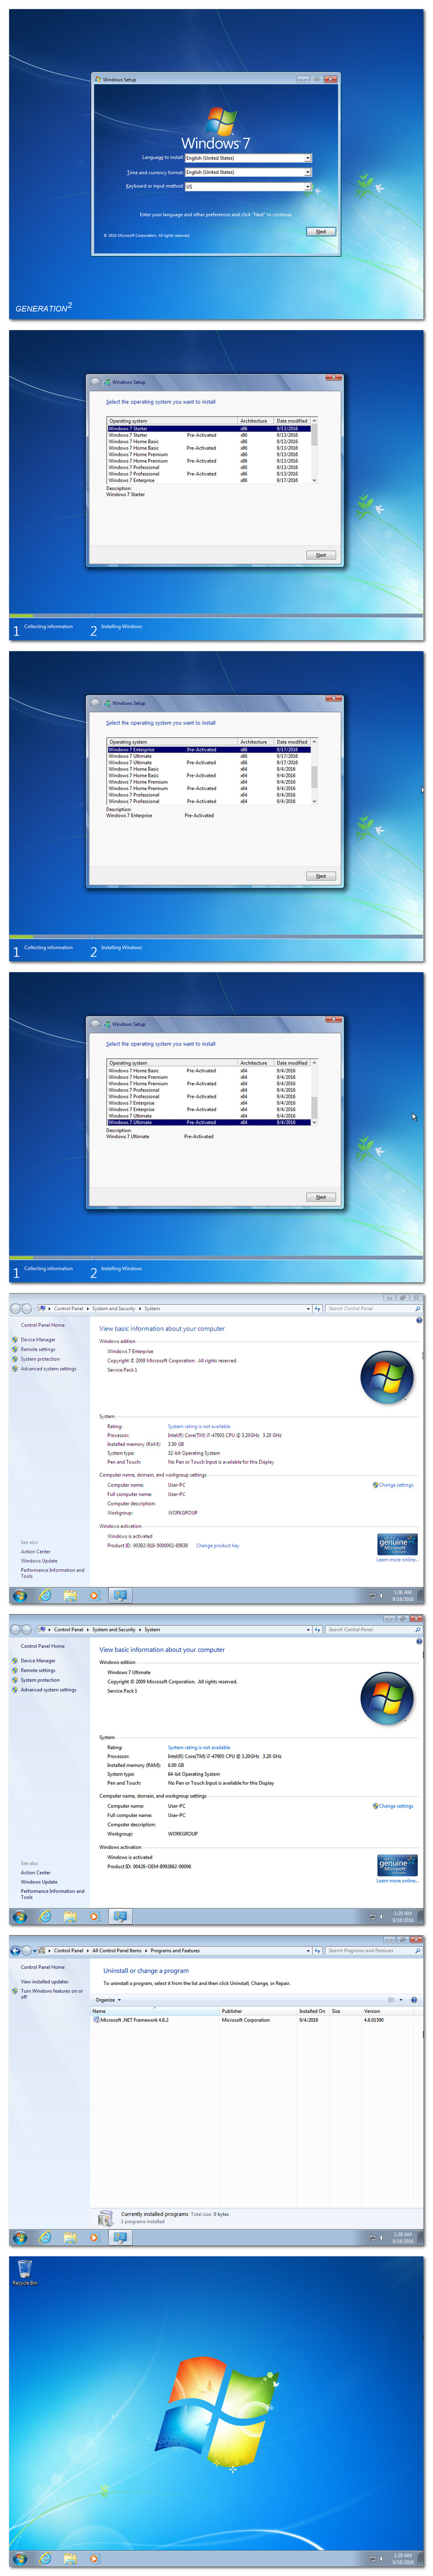 windows-7-sp1-iso-2016